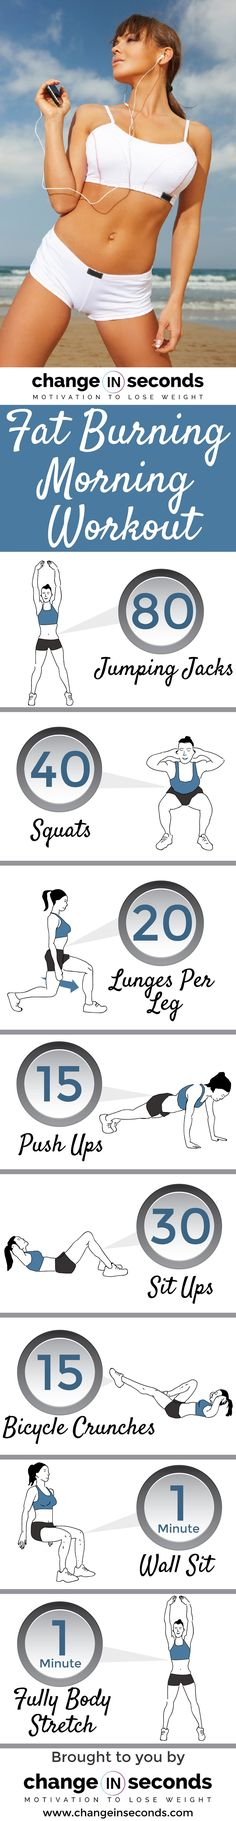 Fat Burning Morning Workout